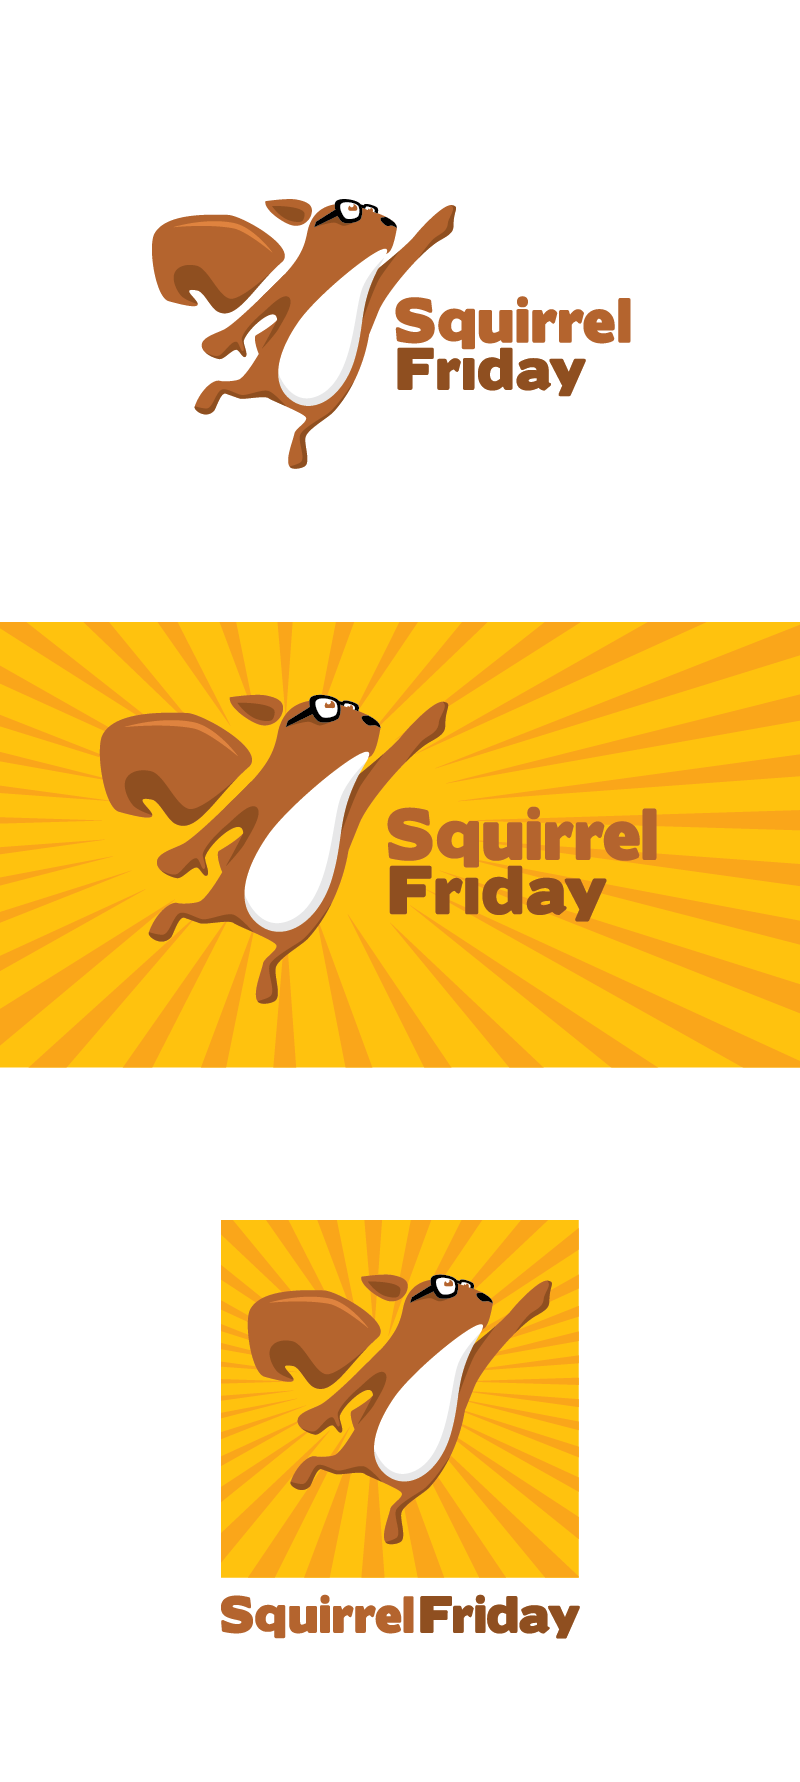 Design my social networking and website logo for SquirrelFriday! Let's do this!